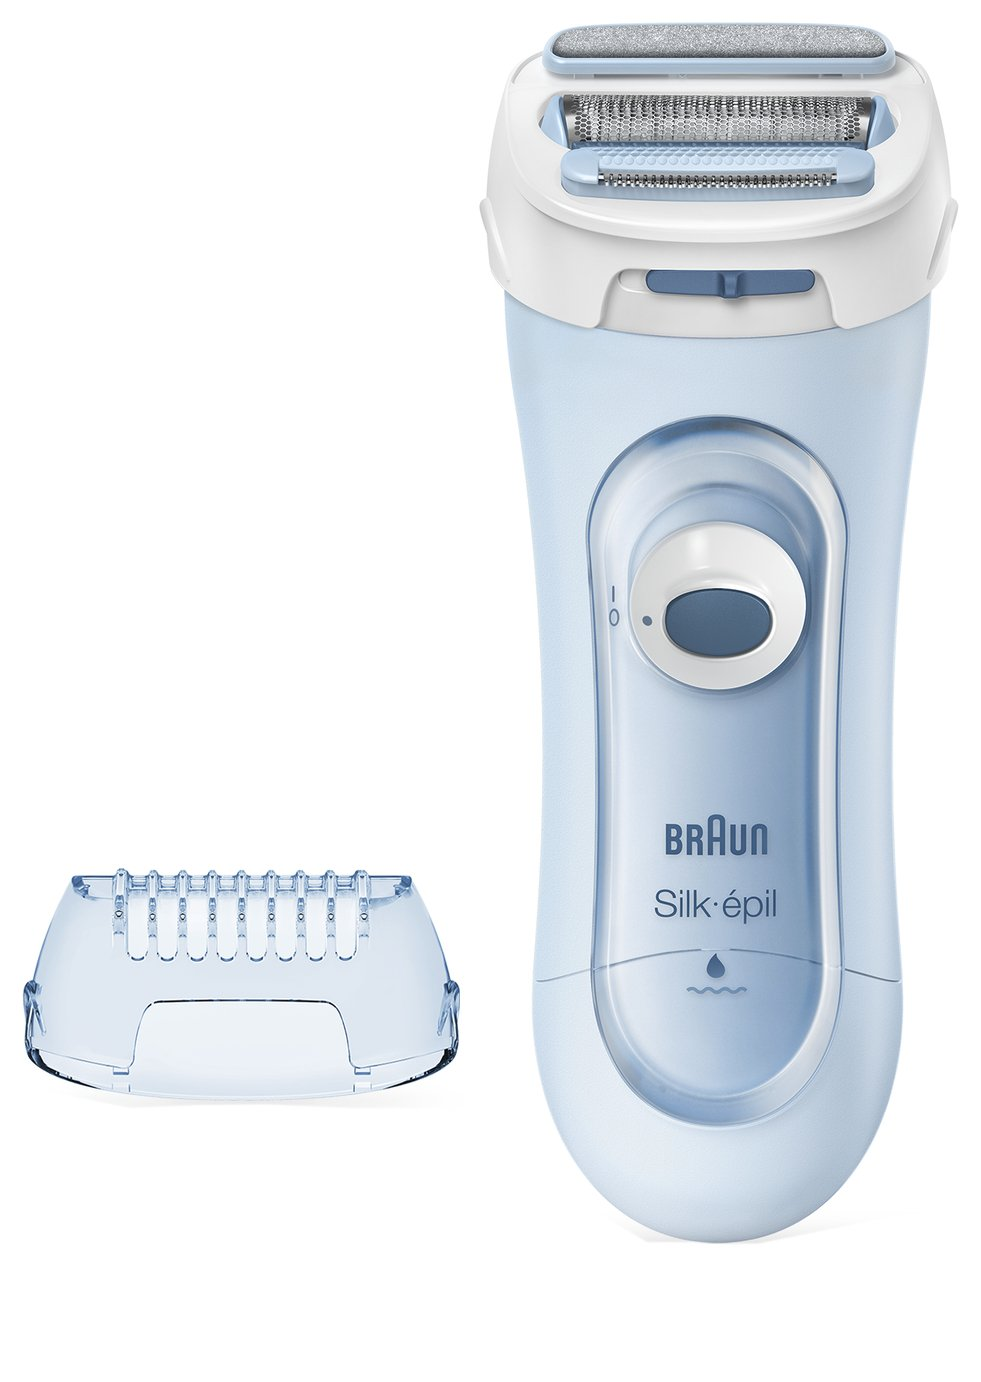 Braun LS5160 Silk-Epil Wet and Dry Cordless Ladyshaver